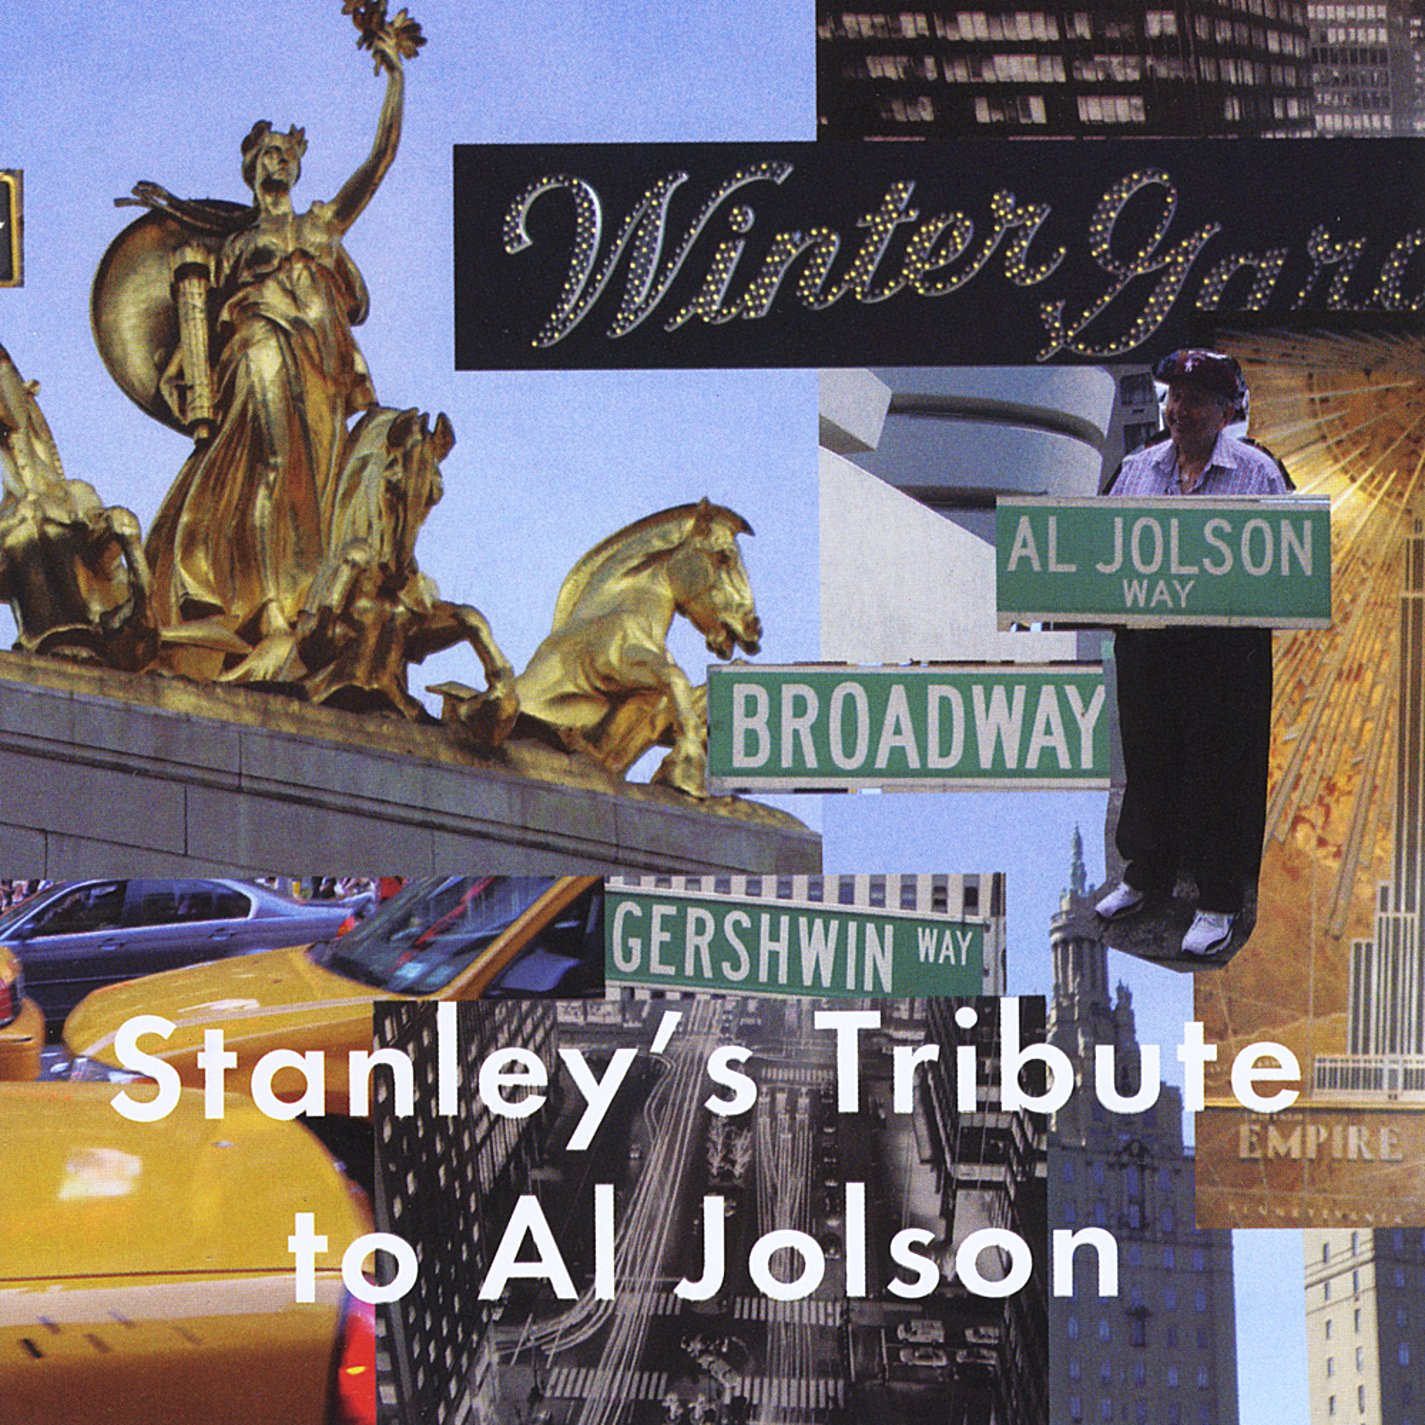 Great interest Stanley's Tribute to Al Colorado Springs Mall Jolson